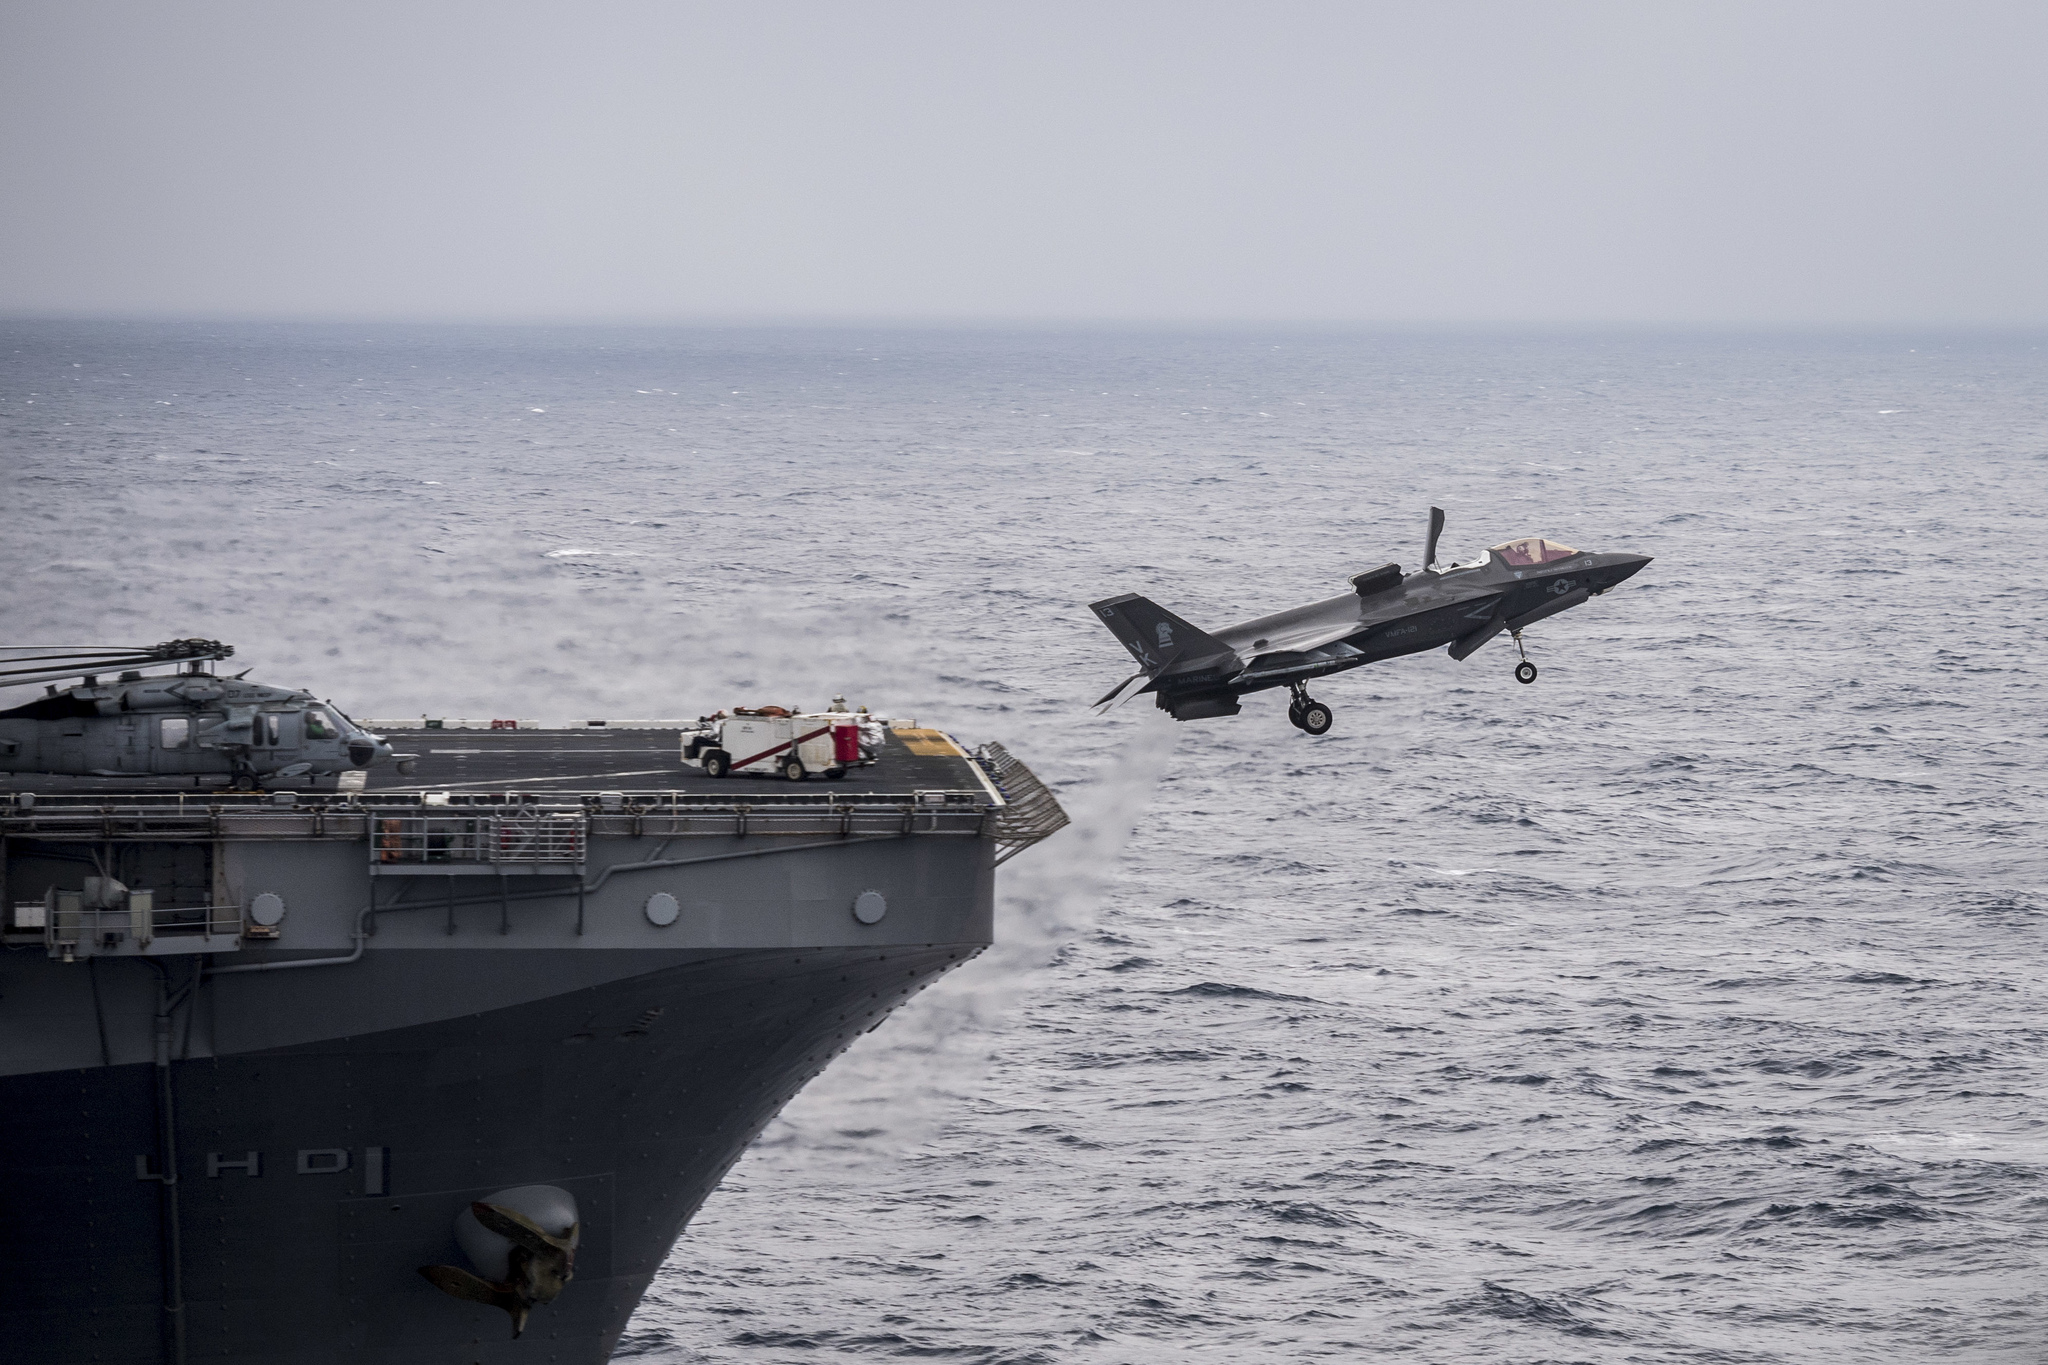 An F-35B Lightning II aircraft takes off from the flight deck of the amphibious assault ship USS Wasp (LHD 1) on Feb. 9, 2019, in the Philippine Sea. (Mass Communication Specialist 2nd Class Sarah Myers/Navy)